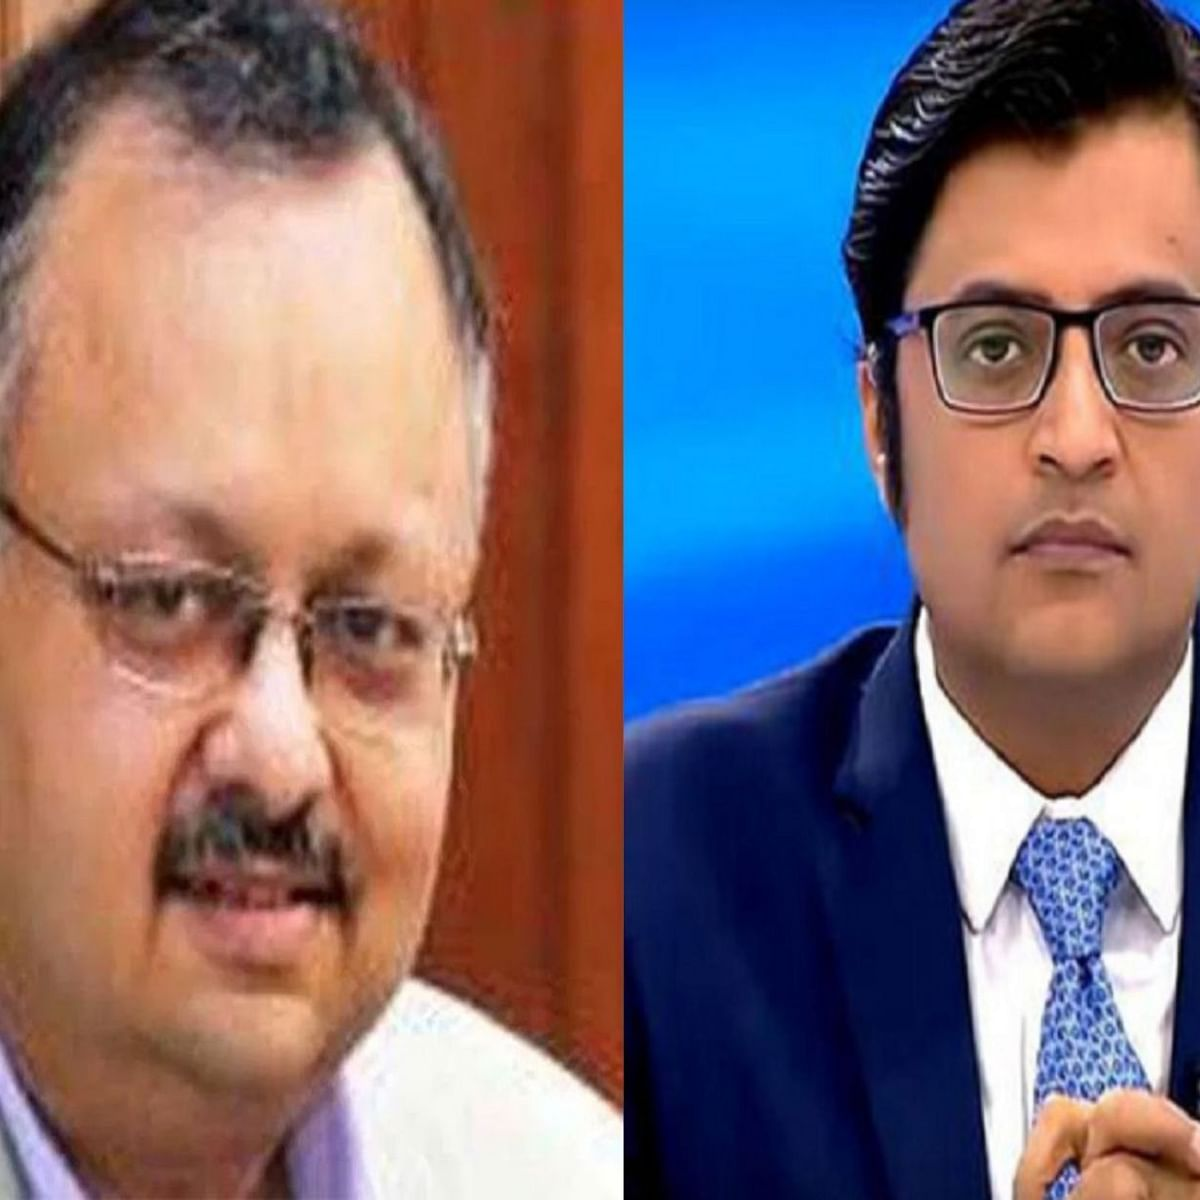 Ex-CEO of rating agency BARC and Arnab Goswami